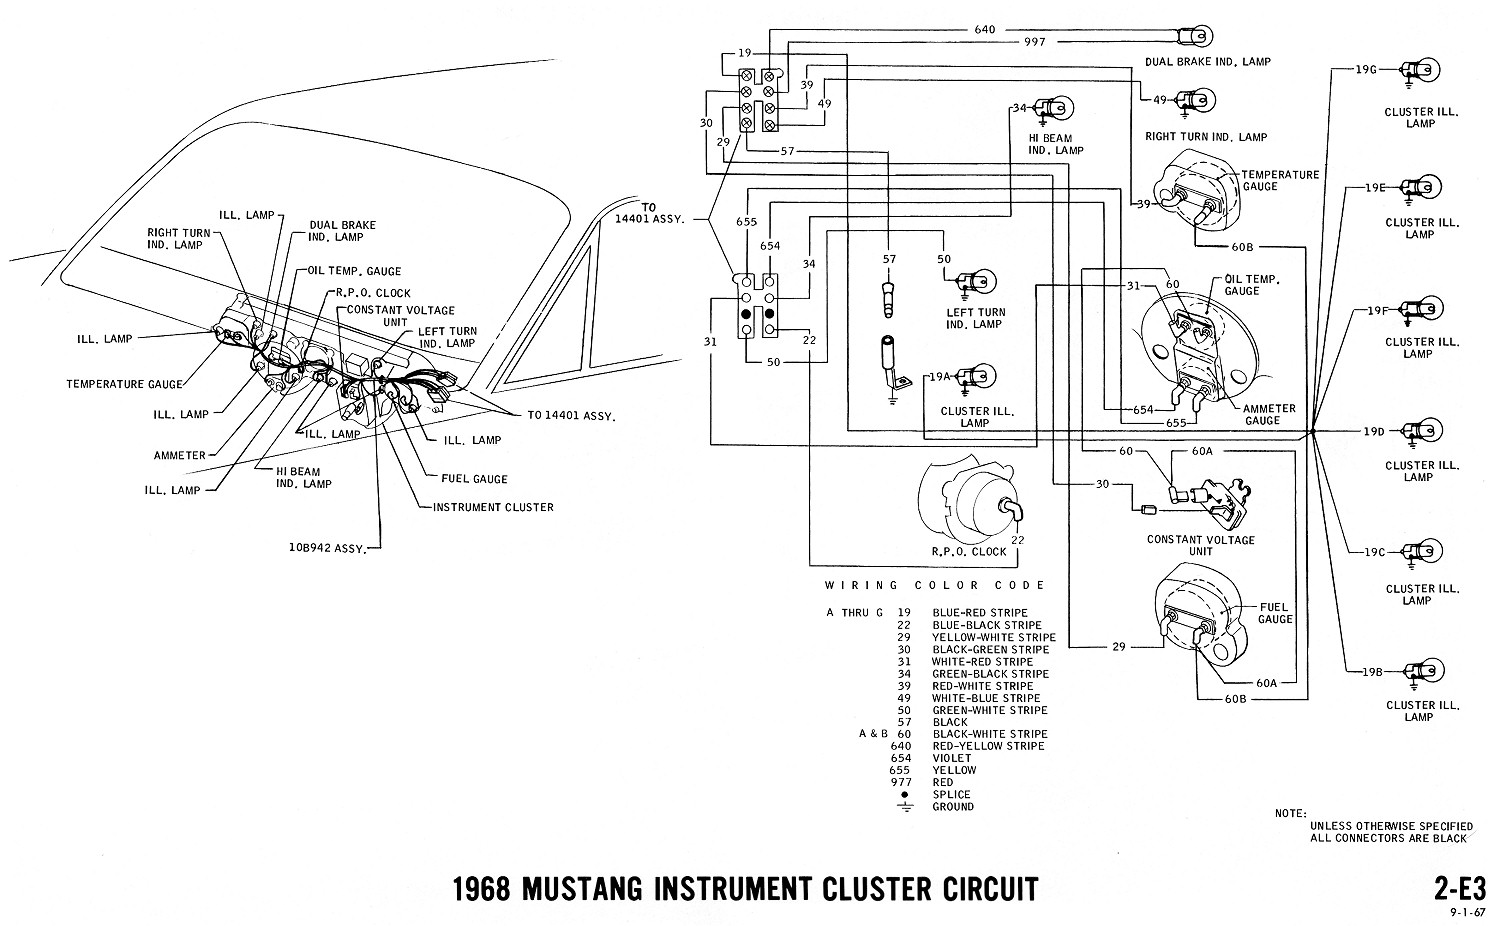 Heat Wire Diagram 1970 Mustang Wiring Diagrams Ac Heater Schematcs 1968 And Vacuum Schematics Average Joe White